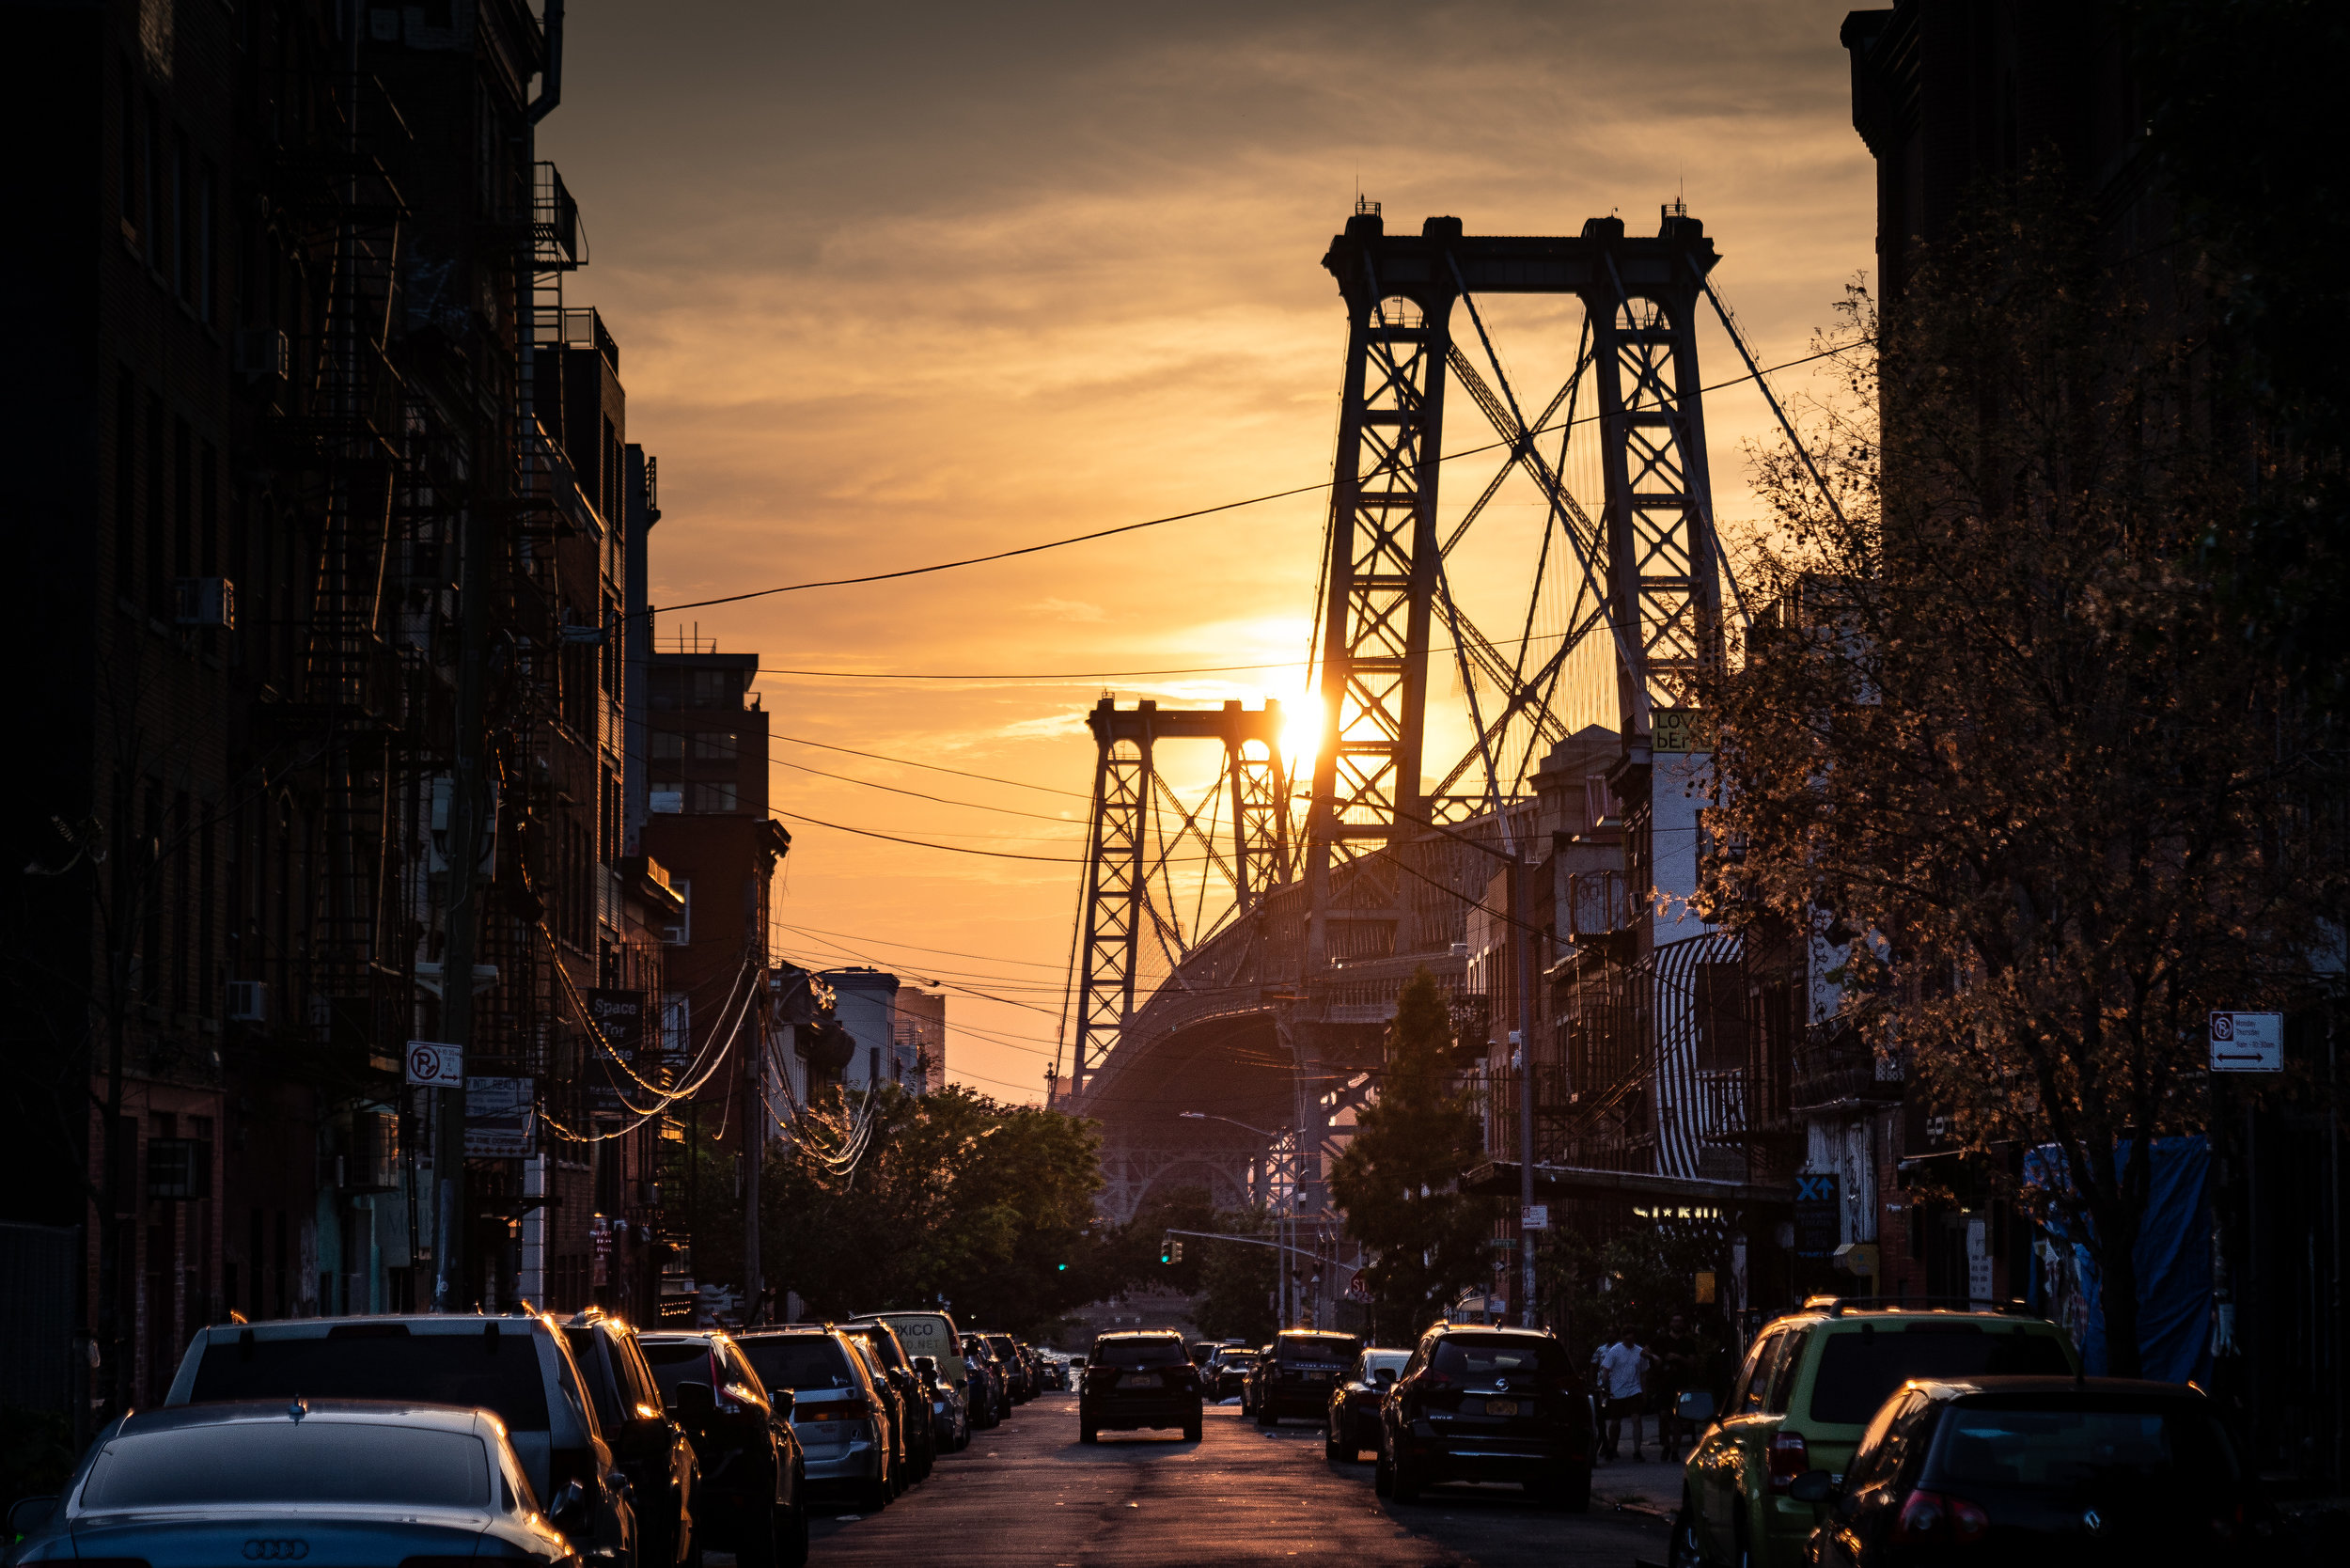 Williamsburg Bridge at sunset seen from S 6th St.